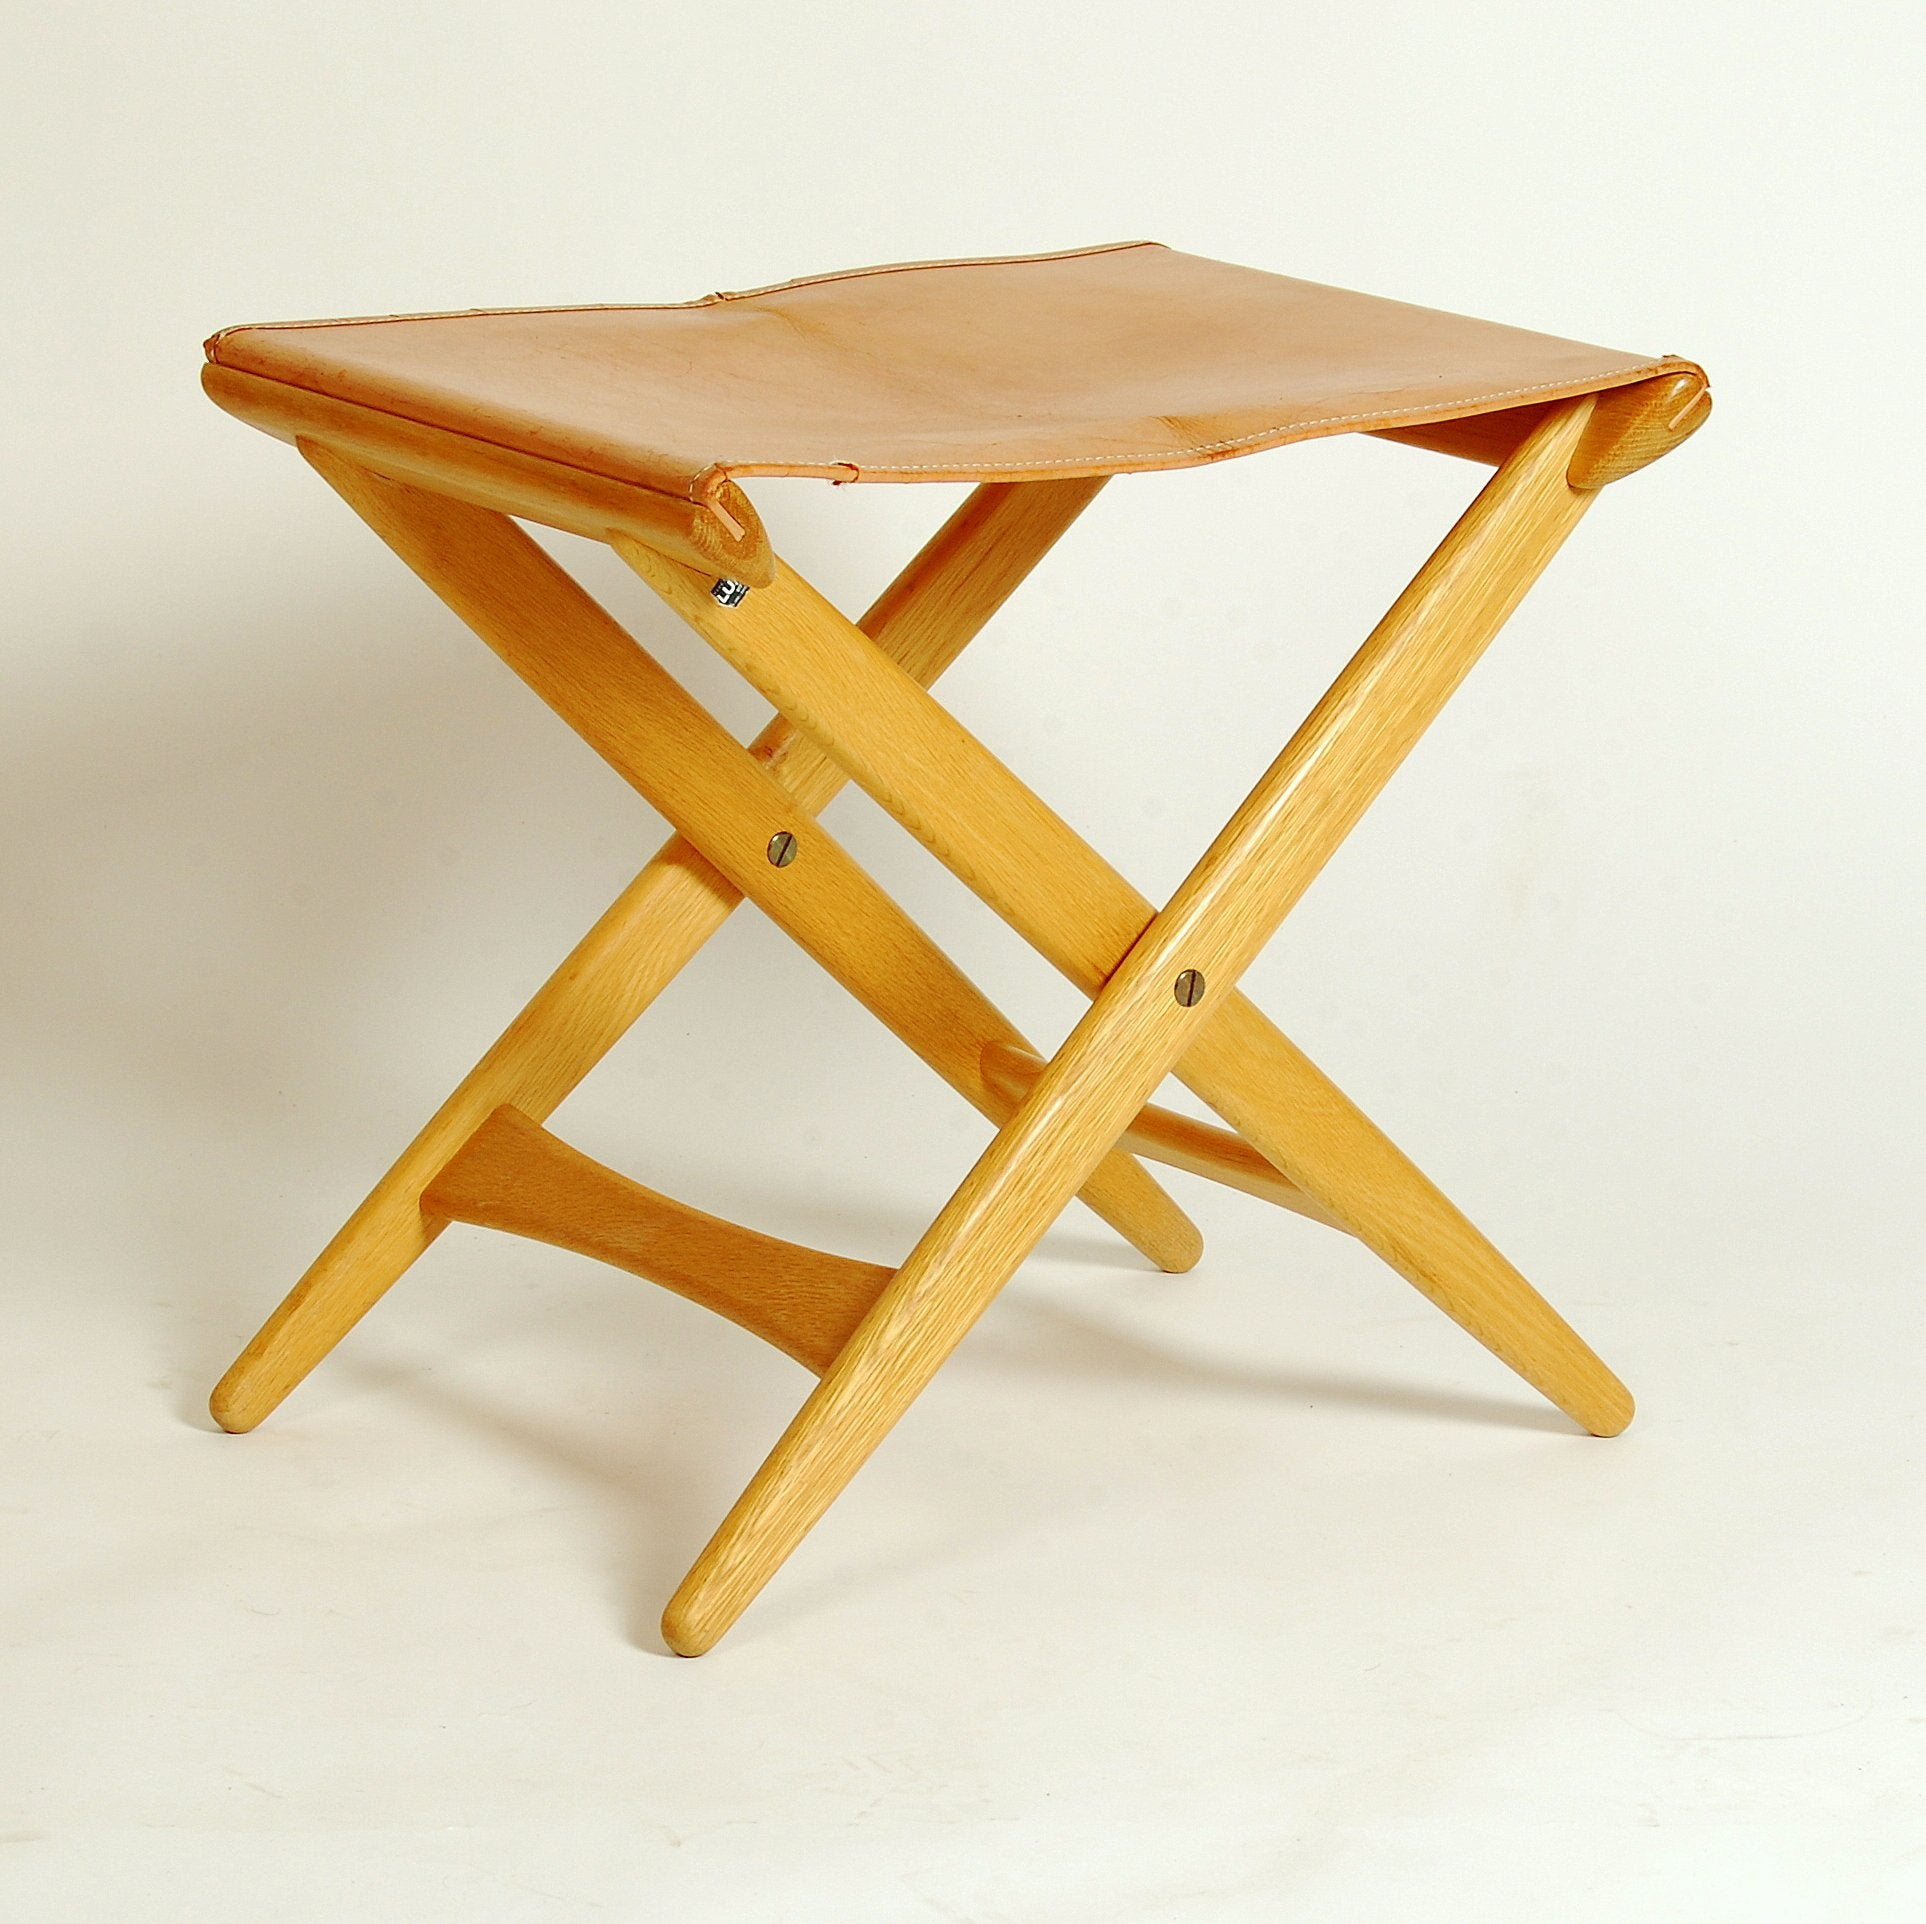 Folded Stool by Uno & Östen Kristiansson for Luxus